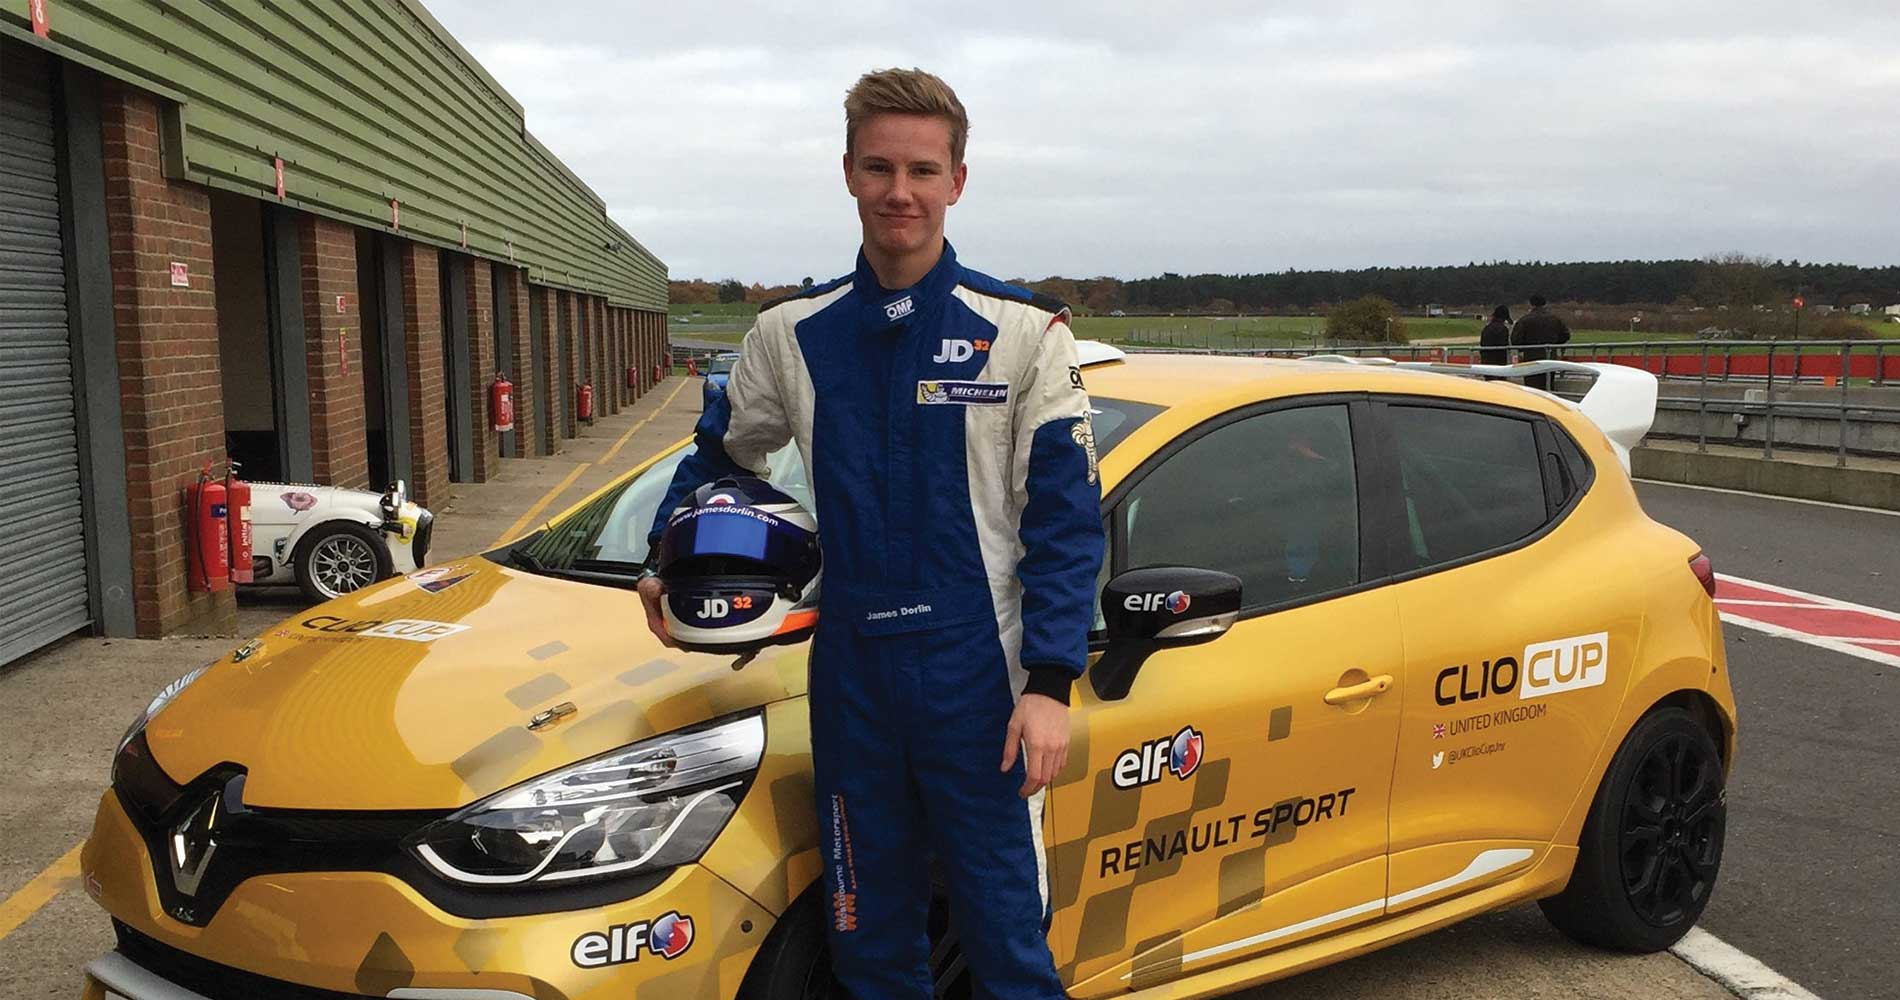 michelin-clio-series-champ-dorlin-closing-on-renault-uk-clio-cup-deal-with-westbourne-after-prize-test-motorsportdays-track-days-1